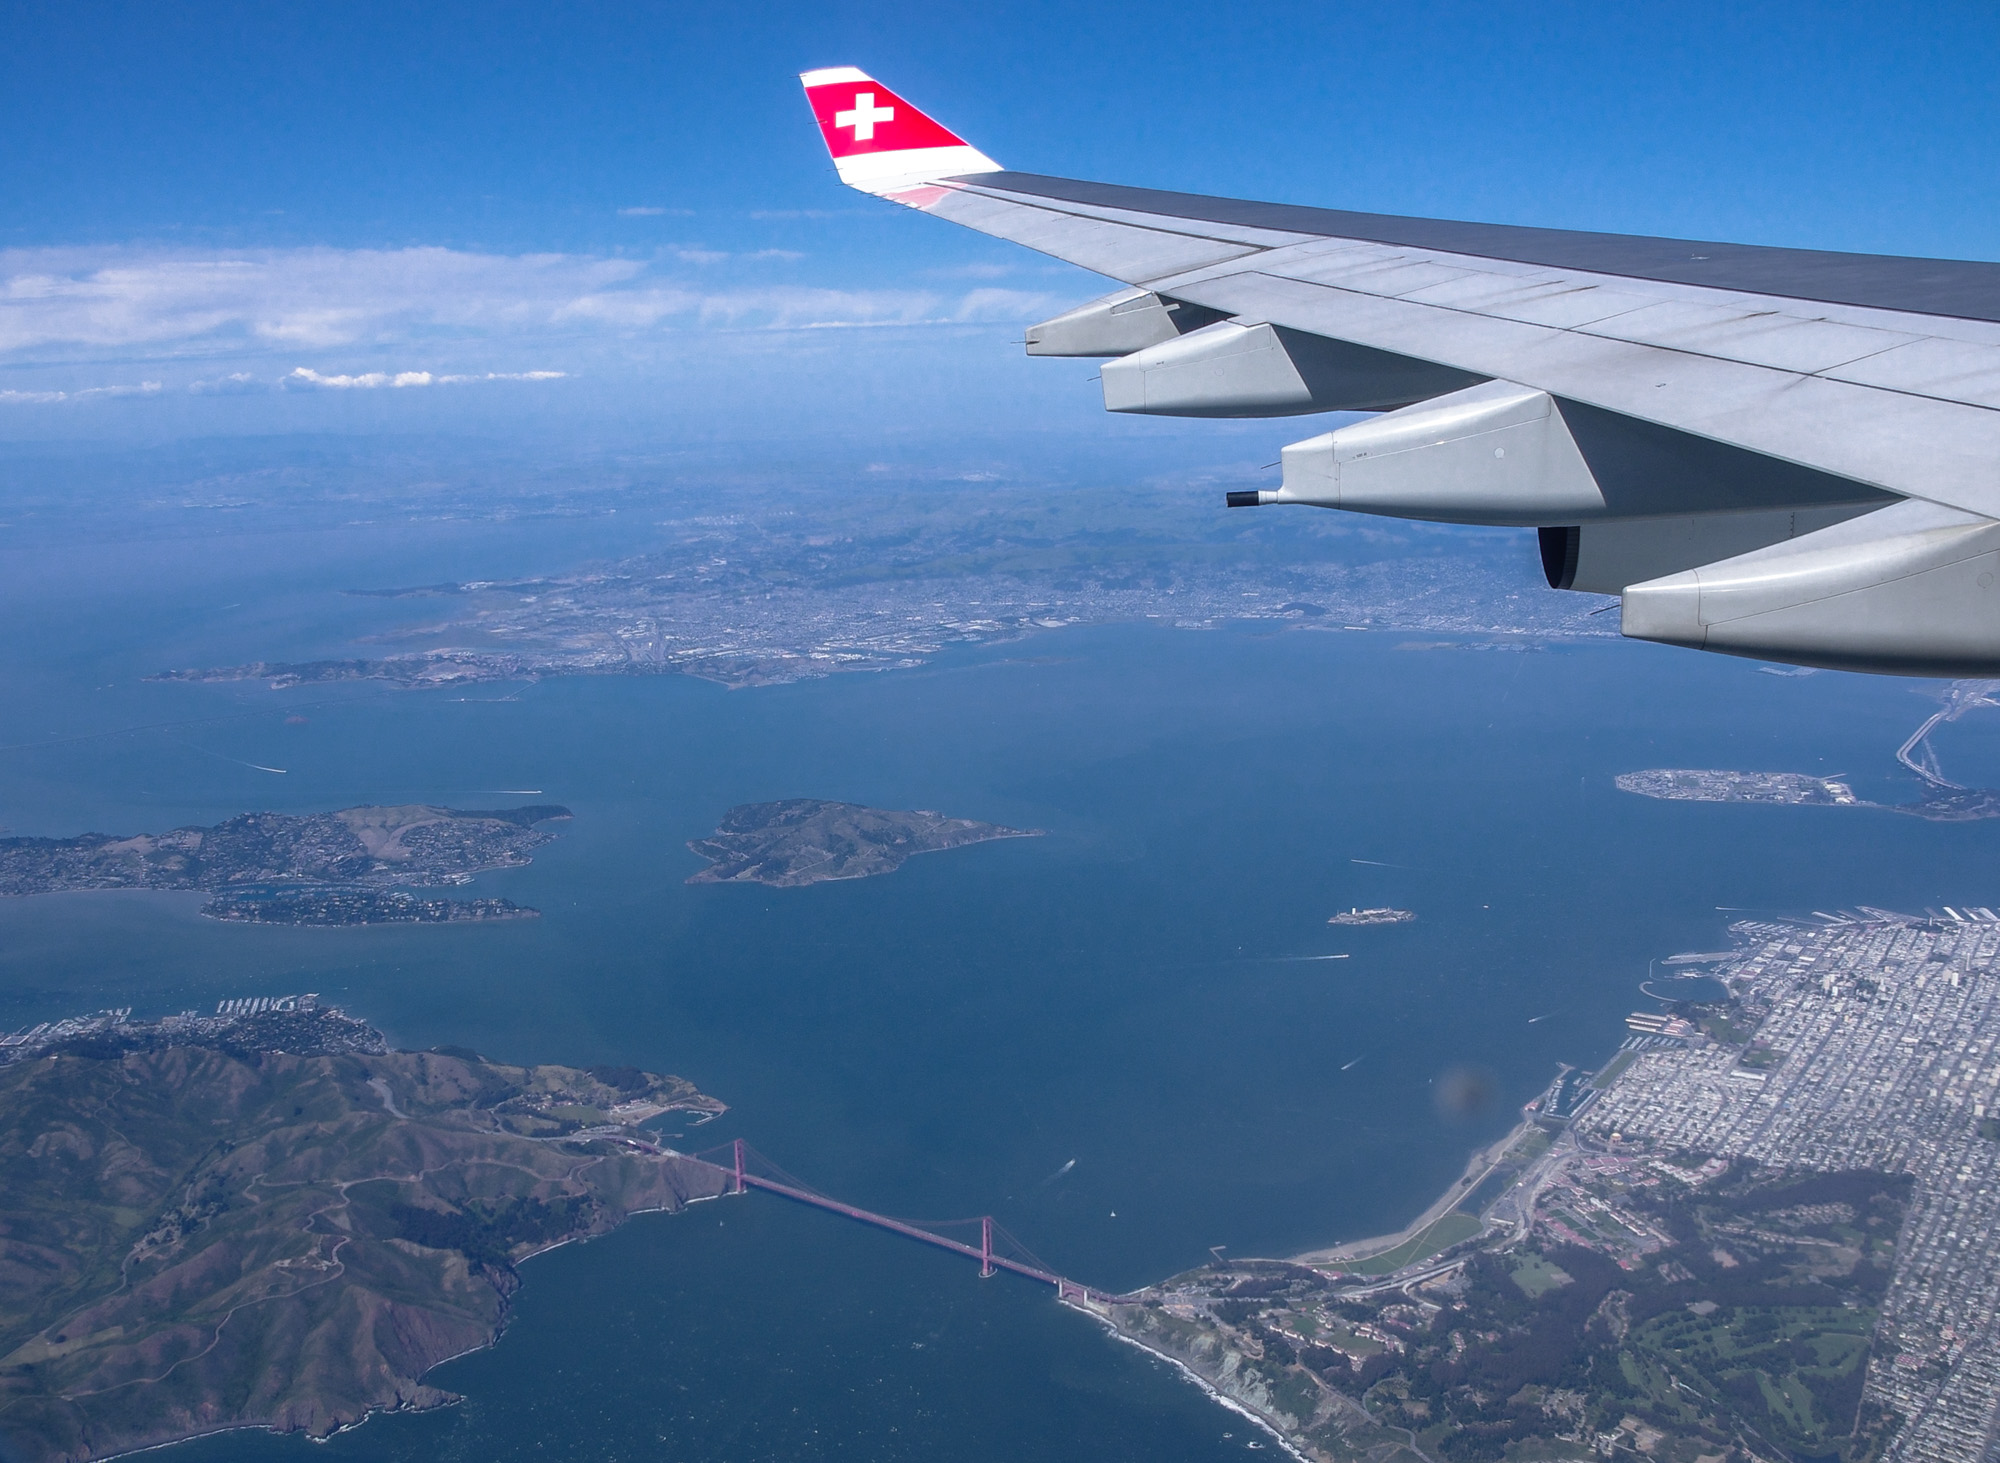 Once upon a time ... sightseeing with Swiss over Frisco, USA